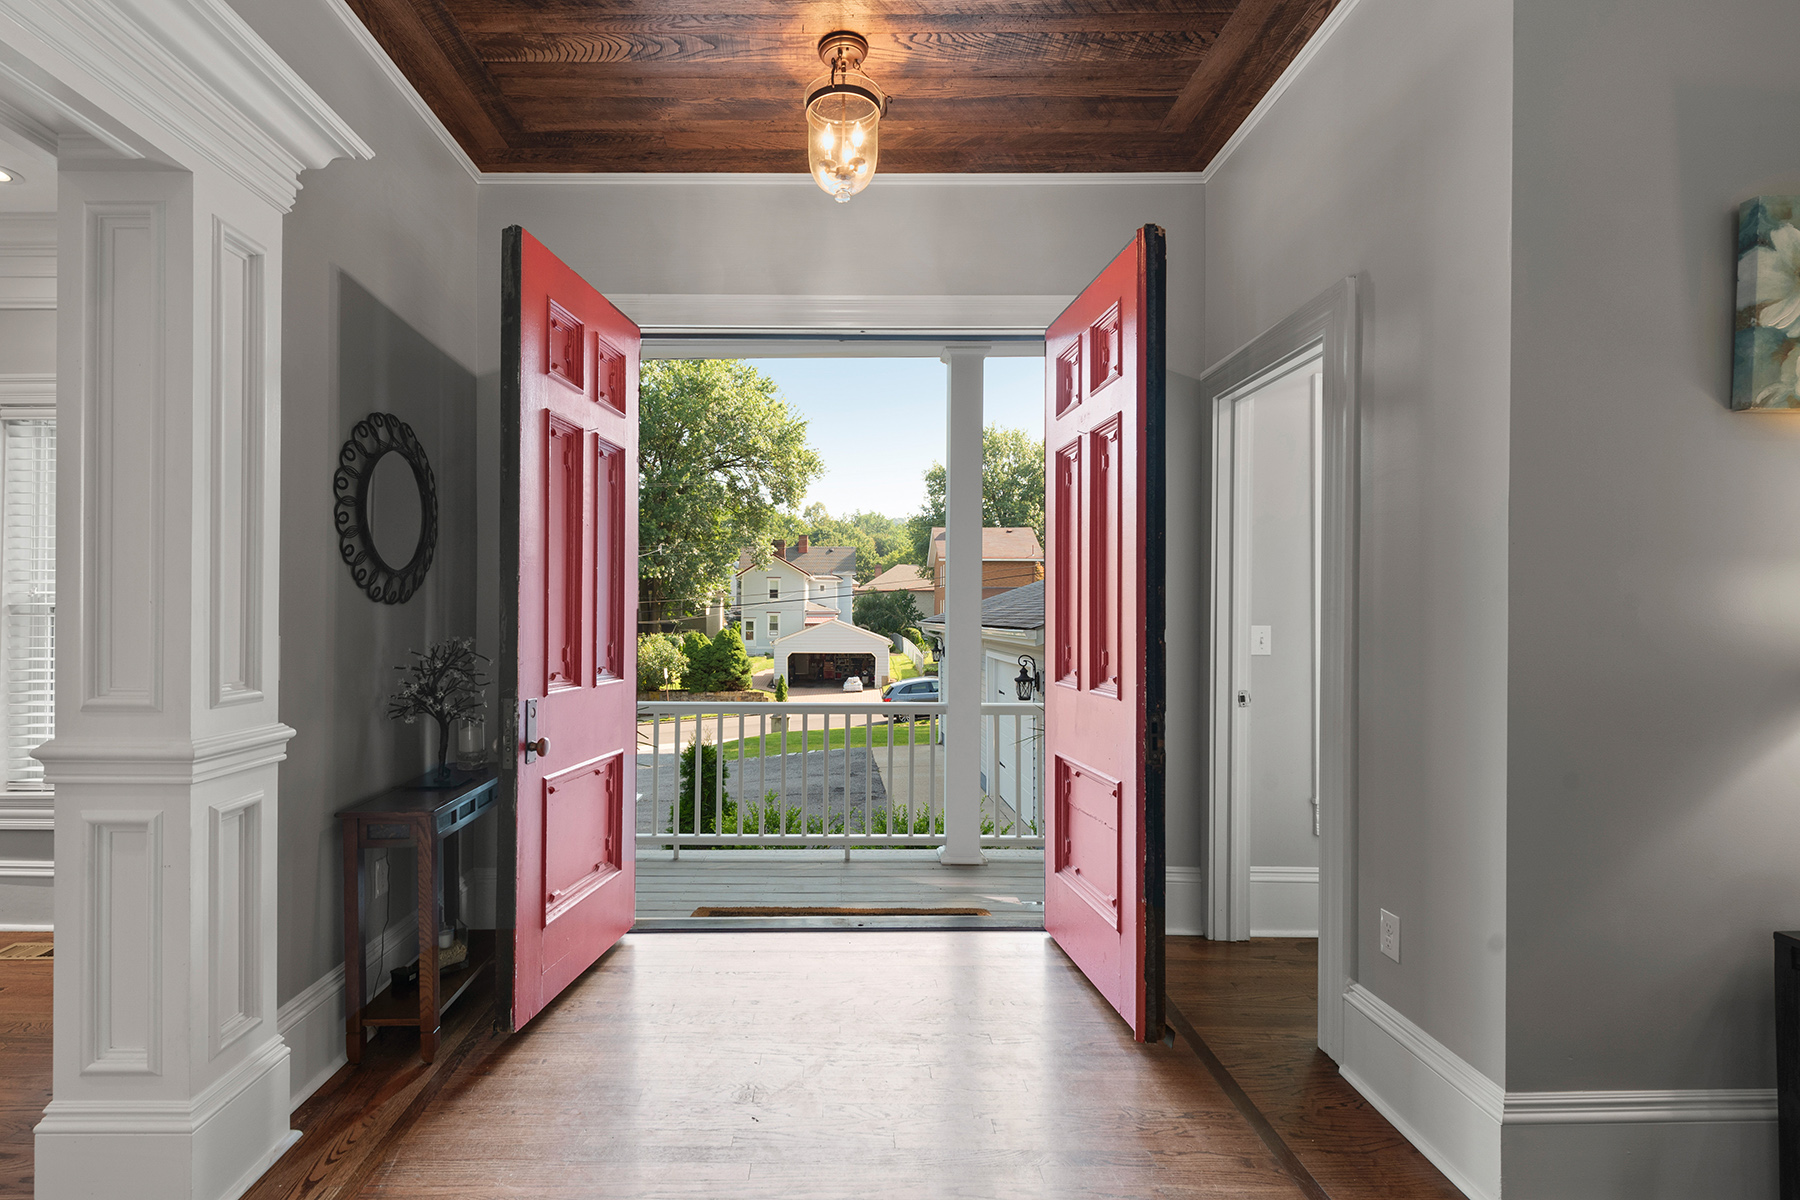 Single Family Homes for Sale at Sewickley Village Revival- 223 Elwick Street Sewickley, Pennsylvania 15143 United States